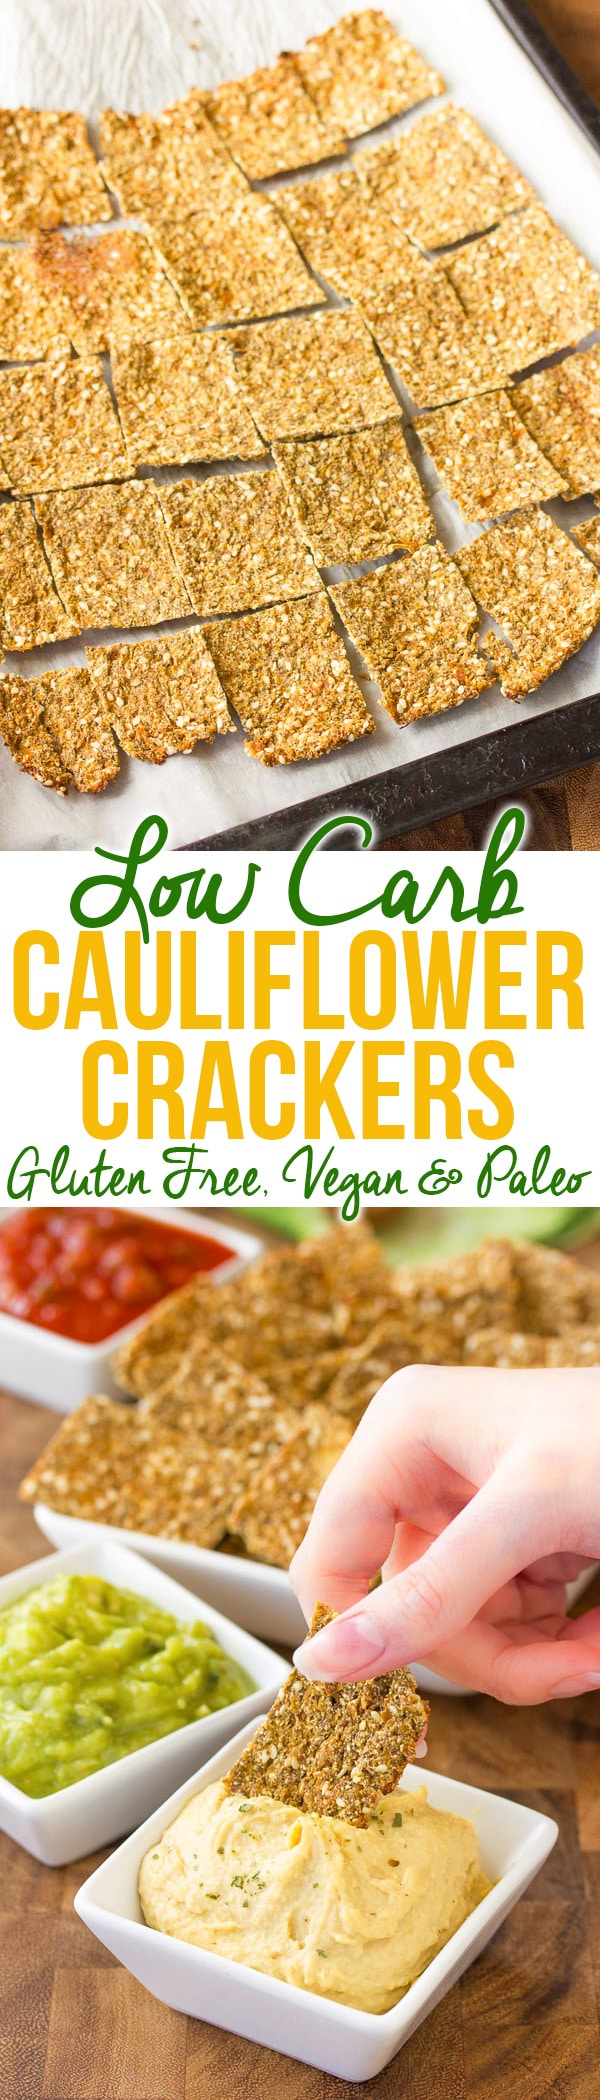 Amazing Low Carb Cauliflower Crackers Recipe - Gluten Free, Vegan & Paleo!